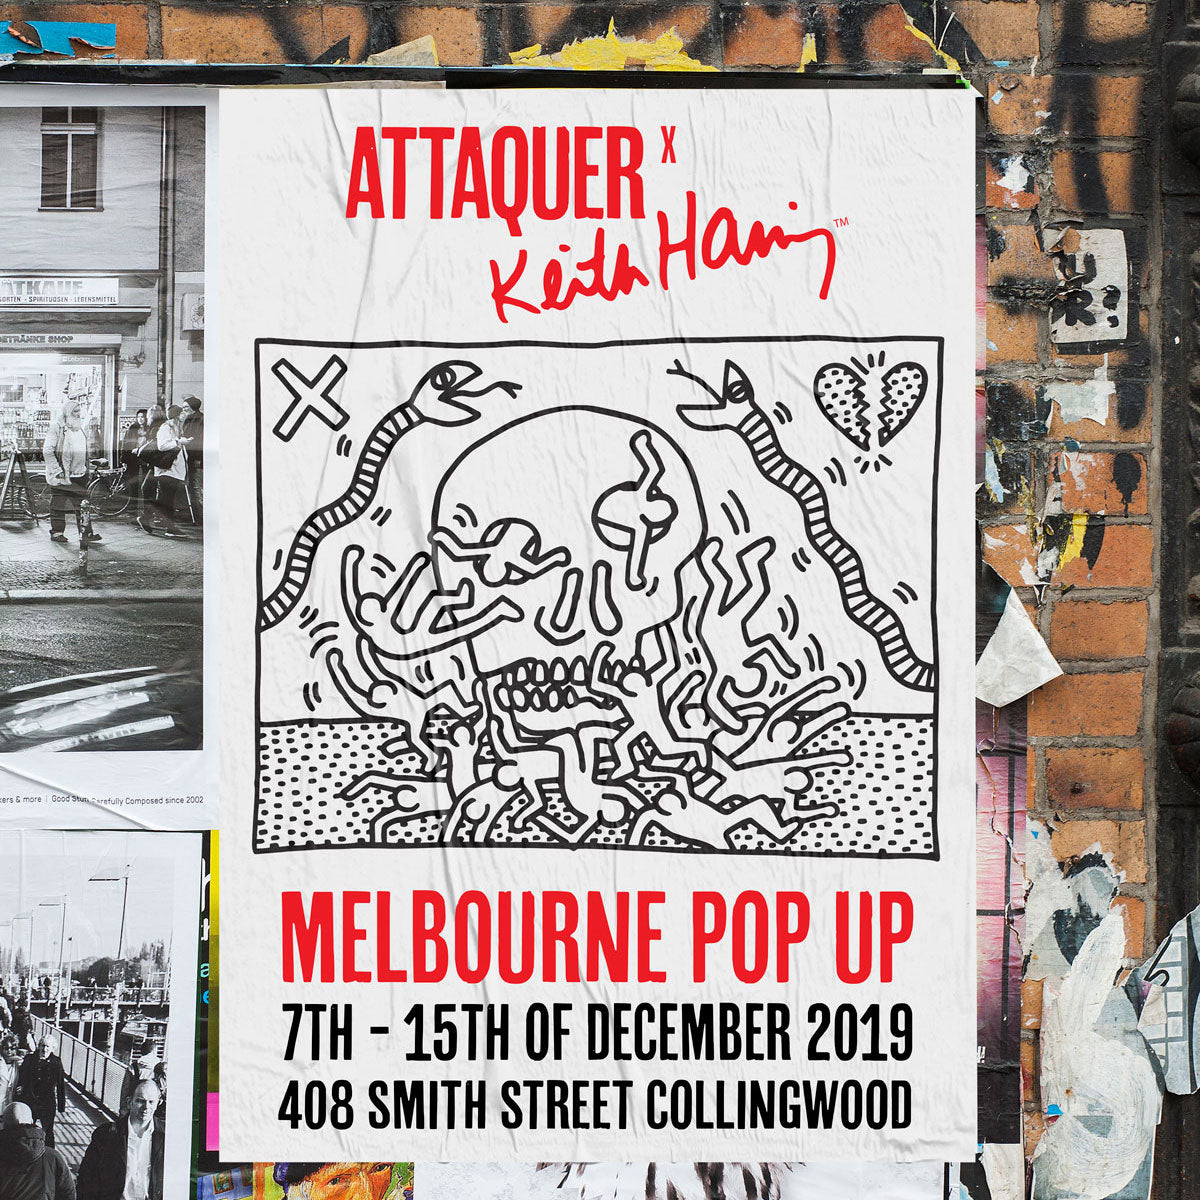 Melbourne Pop Up Cycling Apparel Attaquer